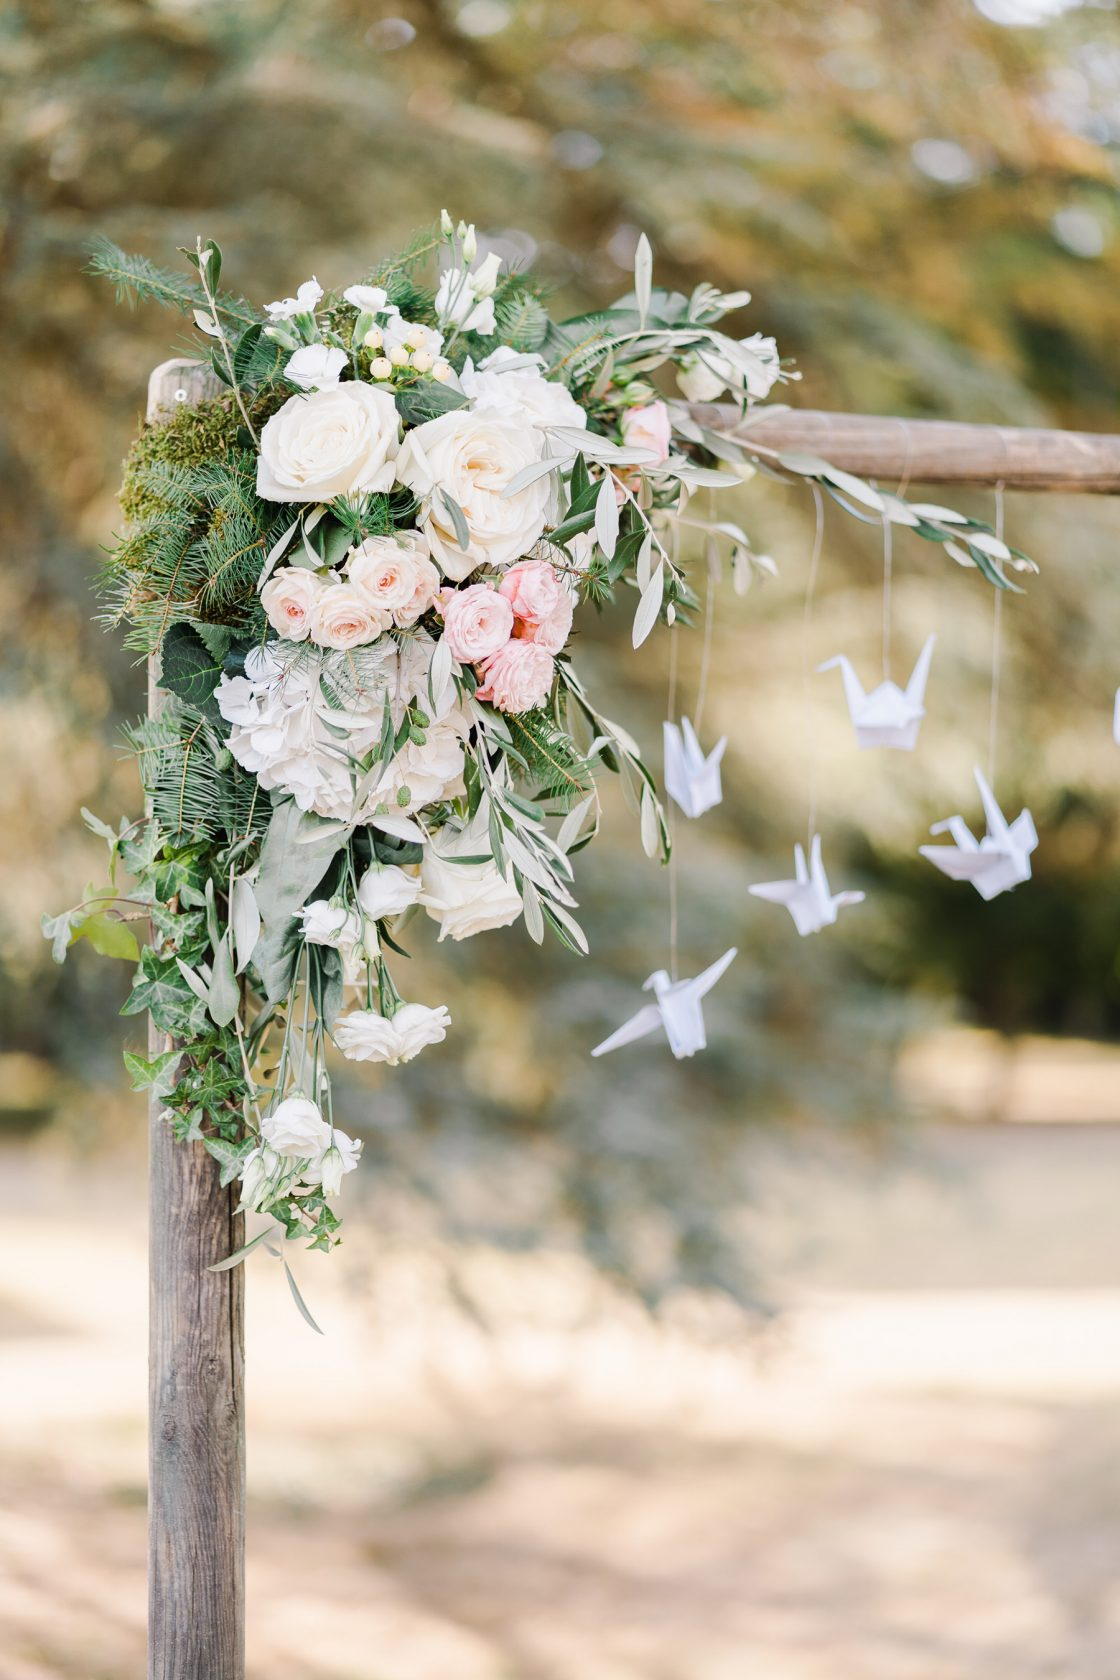 French Chateau Wedding Inspired by Nature Romain Vaucher11